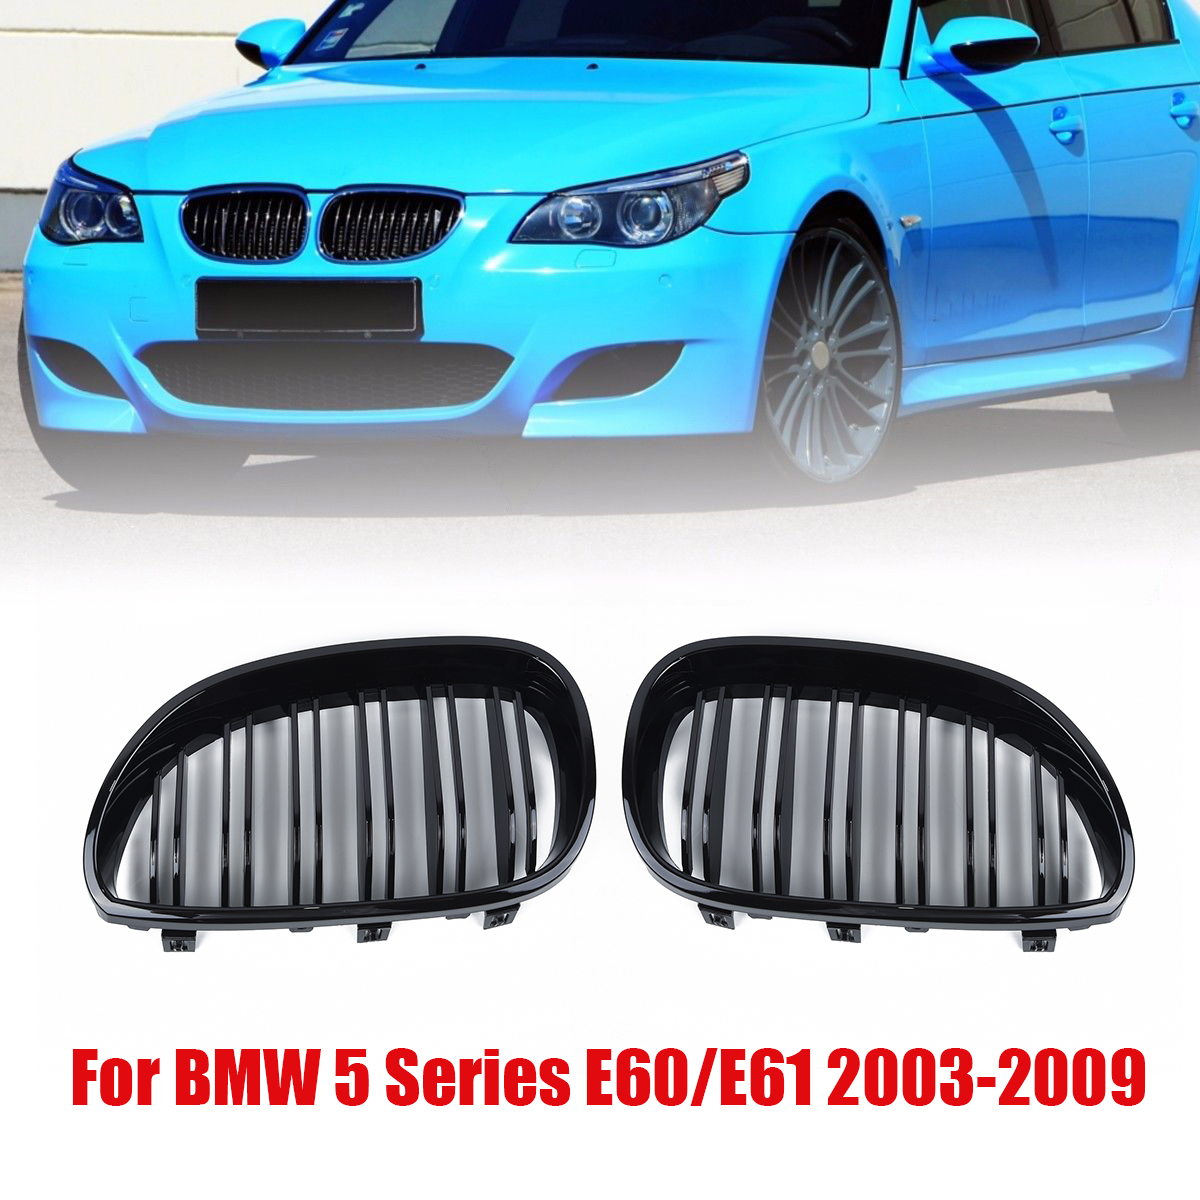 1 pair car Front Kidney Grill Double Line Grille For <font><b>BMW</b></font> <font><b>E60</b></font> E61 <font><b>5</b></font> <font><b>SERIES</b></font> 2003-2010 Gloss Black Front Kidney Grill image